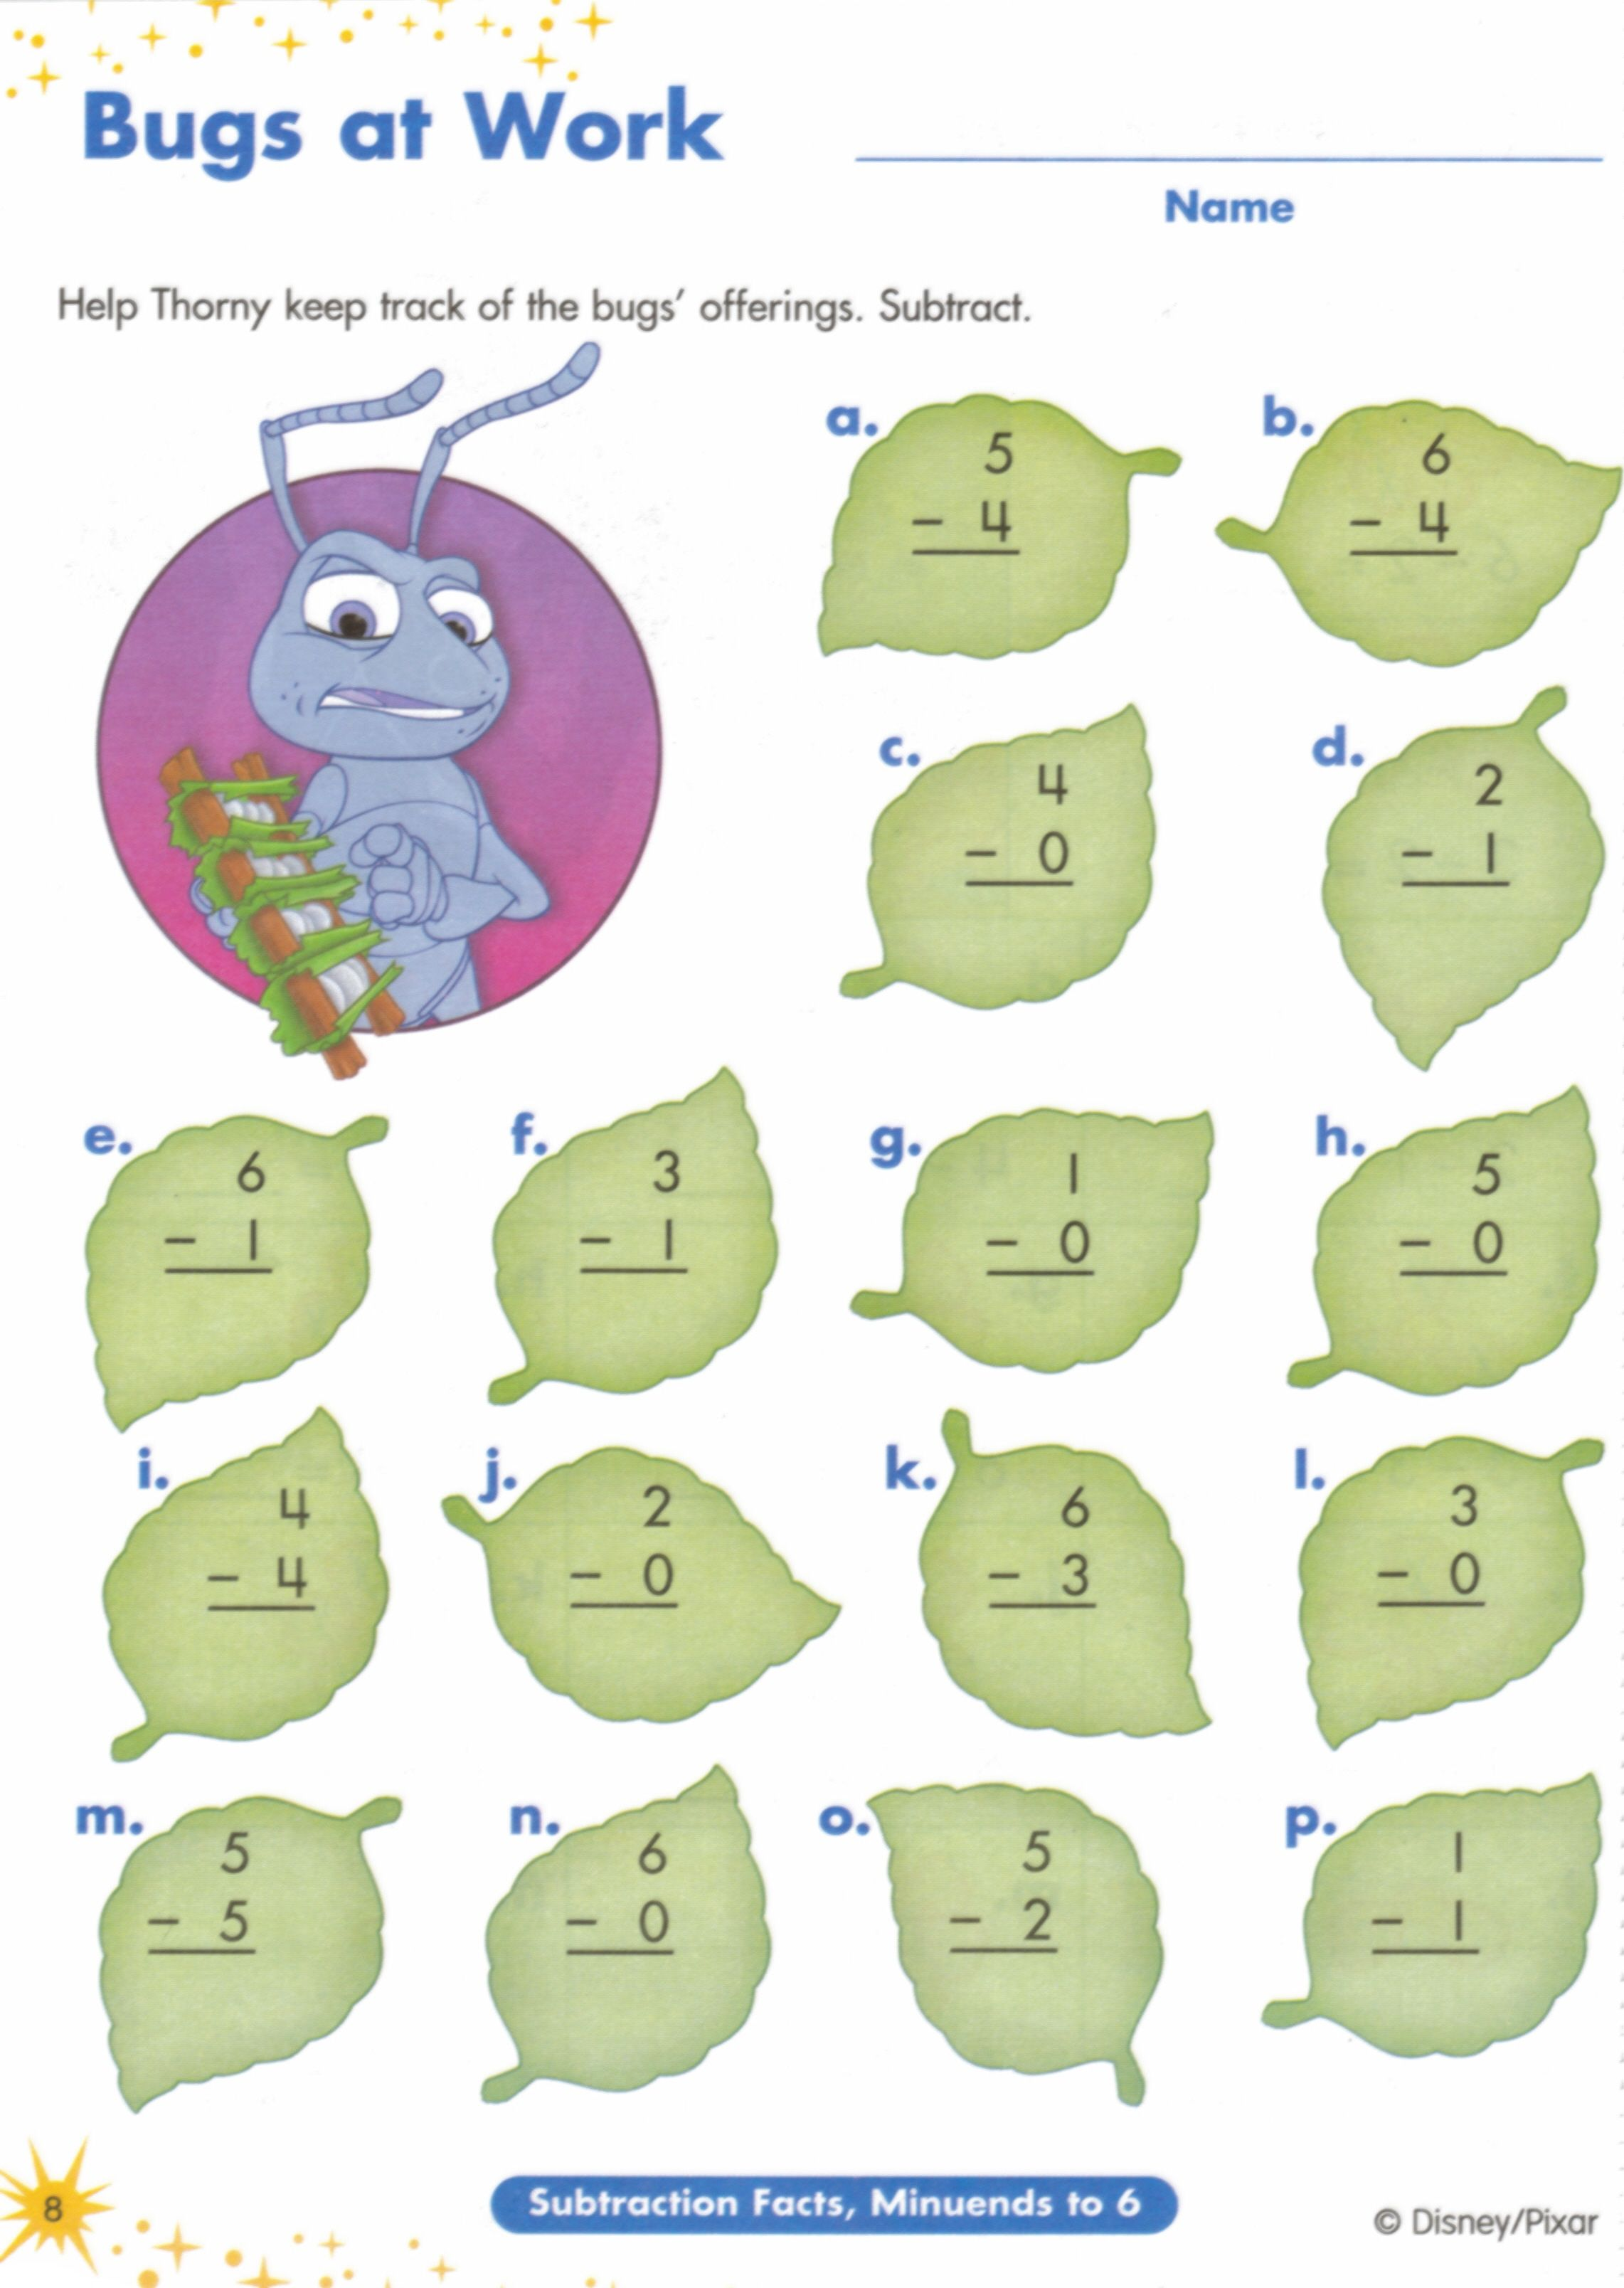 Weirdmailus  Outstanding  Images About Worksheets On Pinterest  Fun Facts For Kids  With Great  Images About Worksheets On Pinterest  Fun Facts For Kids Earth Day Worksheets And Jungles With Lovely Homophones Worksheets Grade  Also O Worksheets For Kindergarten In Addition Math Fact Worksheet Creator And Step  Worksheet Aa As Well As Rowan Of Rin Worksheets Additionally Self Esteem Worksheets Kids From Pinterestcom With Weirdmailus  Great  Images About Worksheets On Pinterest  Fun Facts For Kids  With Lovely  Images About Worksheets On Pinterest  Fun Facts For Kids Earth Day Worksheets And Jungles And Outstanding Homophones Worksheets Grade  Also O Worksheets For Kindergarten In Addition Math Fact Worksheet Creator From Pinterestcom